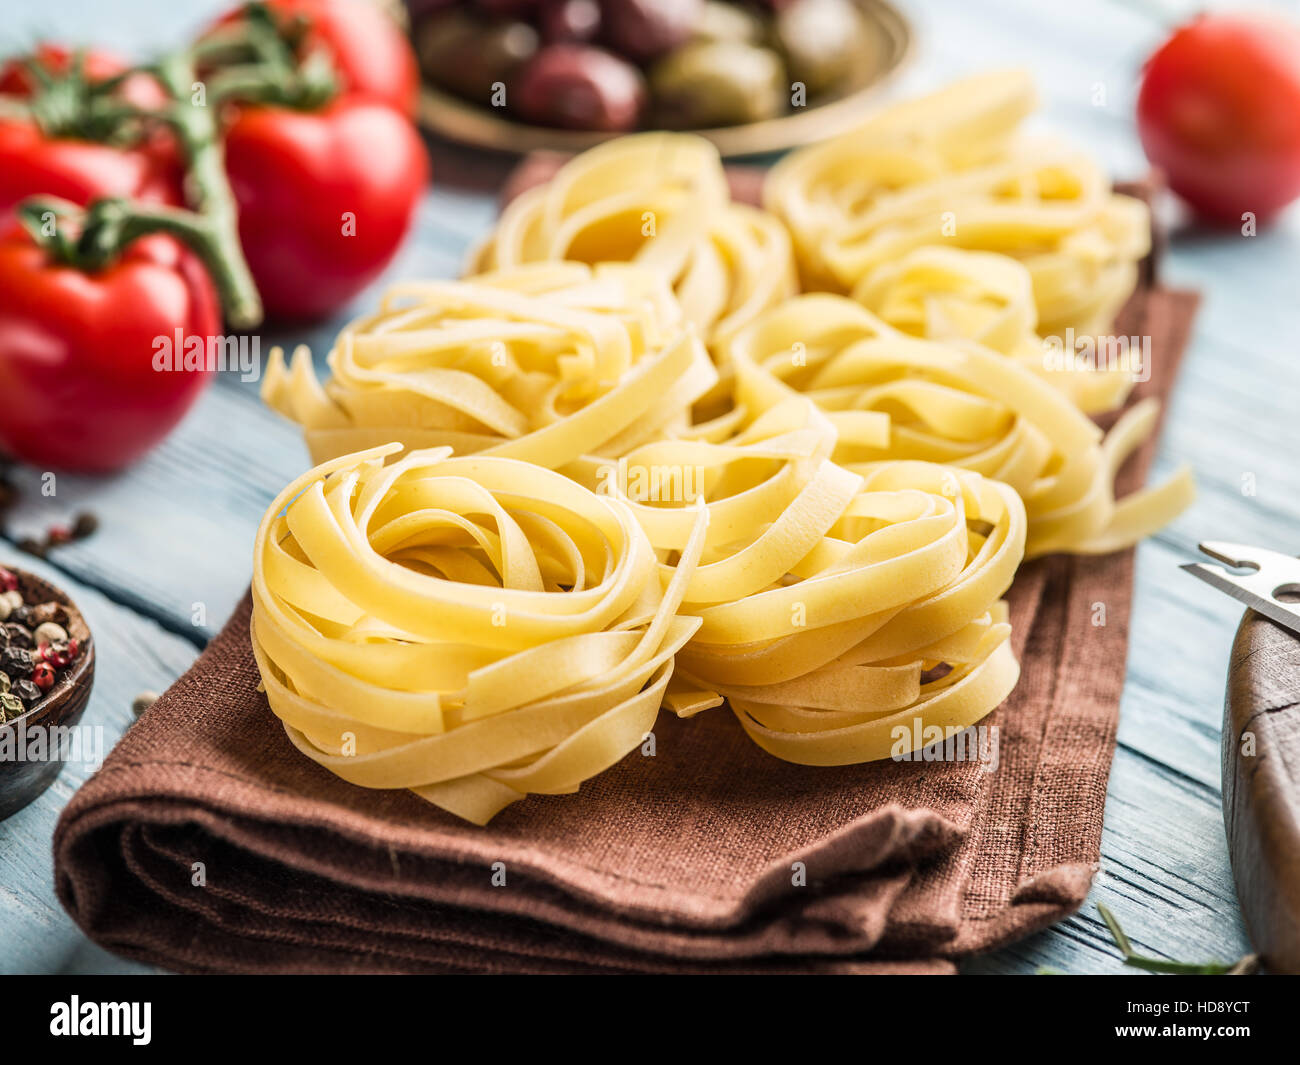 Pasta ingredients. Cherry-tomatoes, spaghetti pasta and spices on the wooden table. - Stock Image